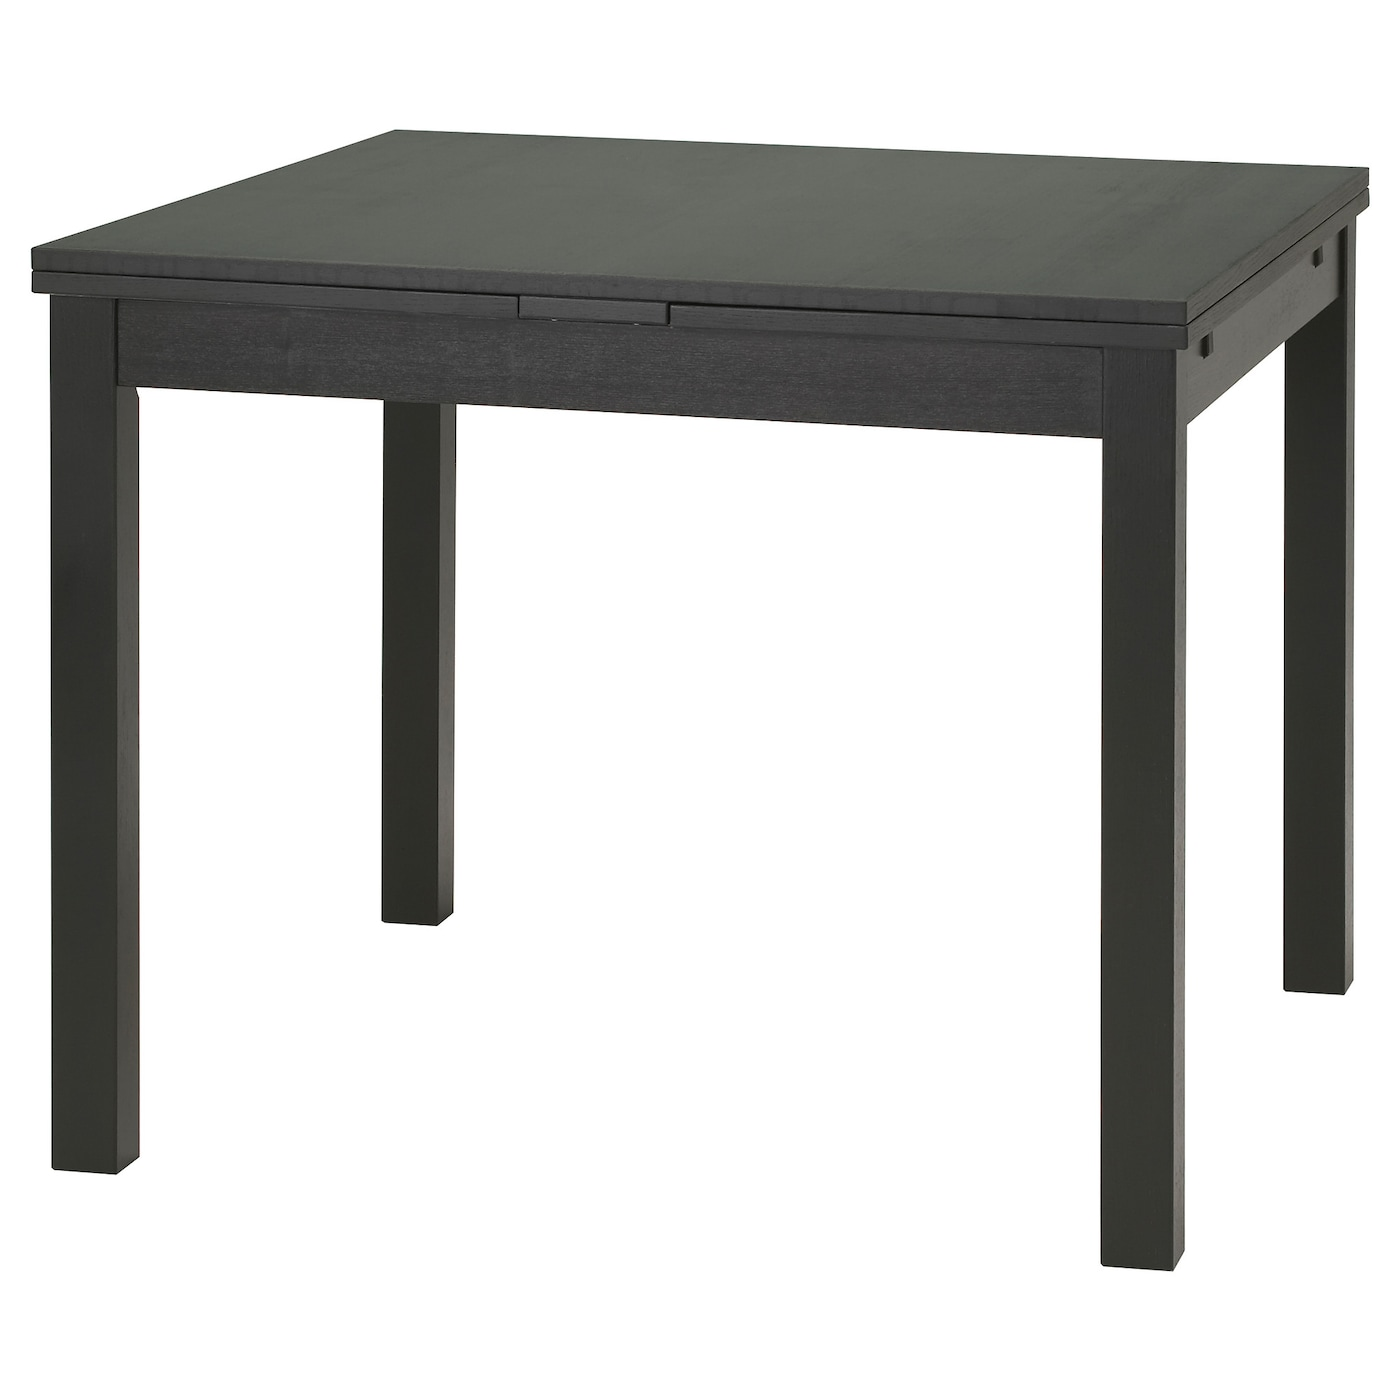 Bjursta extendable table brown black 90 129 168x90 cm ikea for Table salle manger ikea